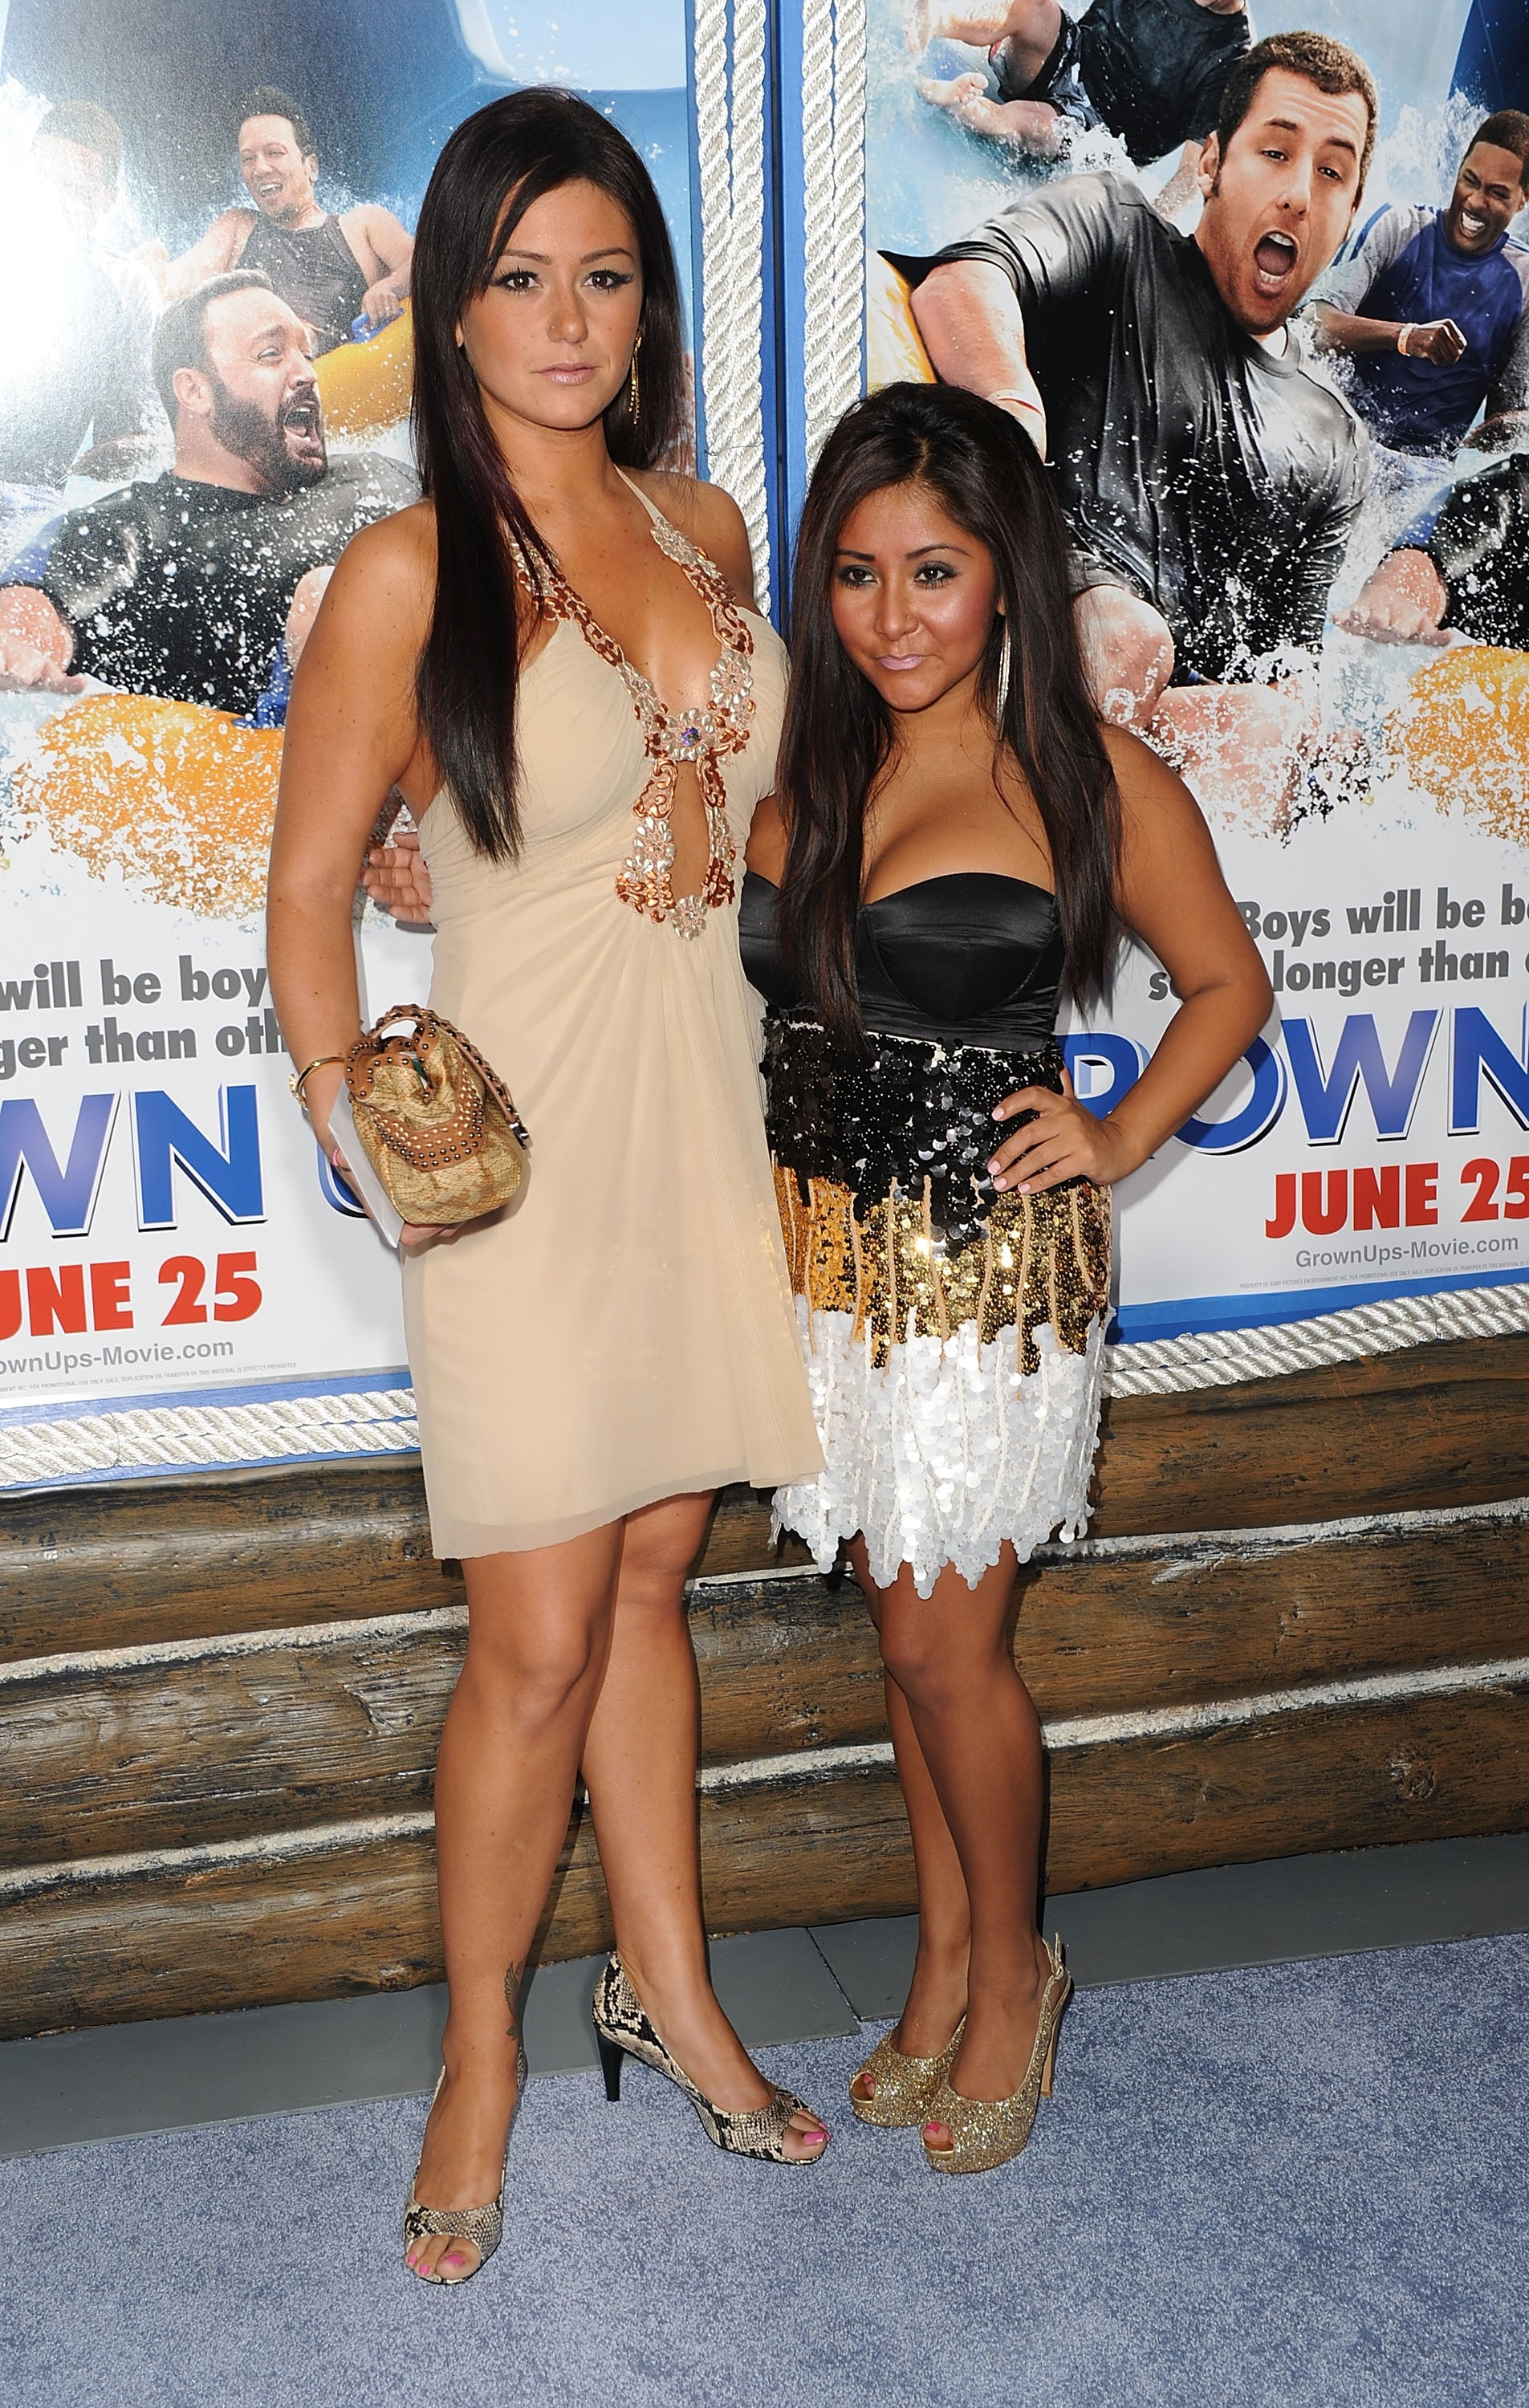 Pictures of Grown Ups Premiere in NYC Inc Salma Hayek, David